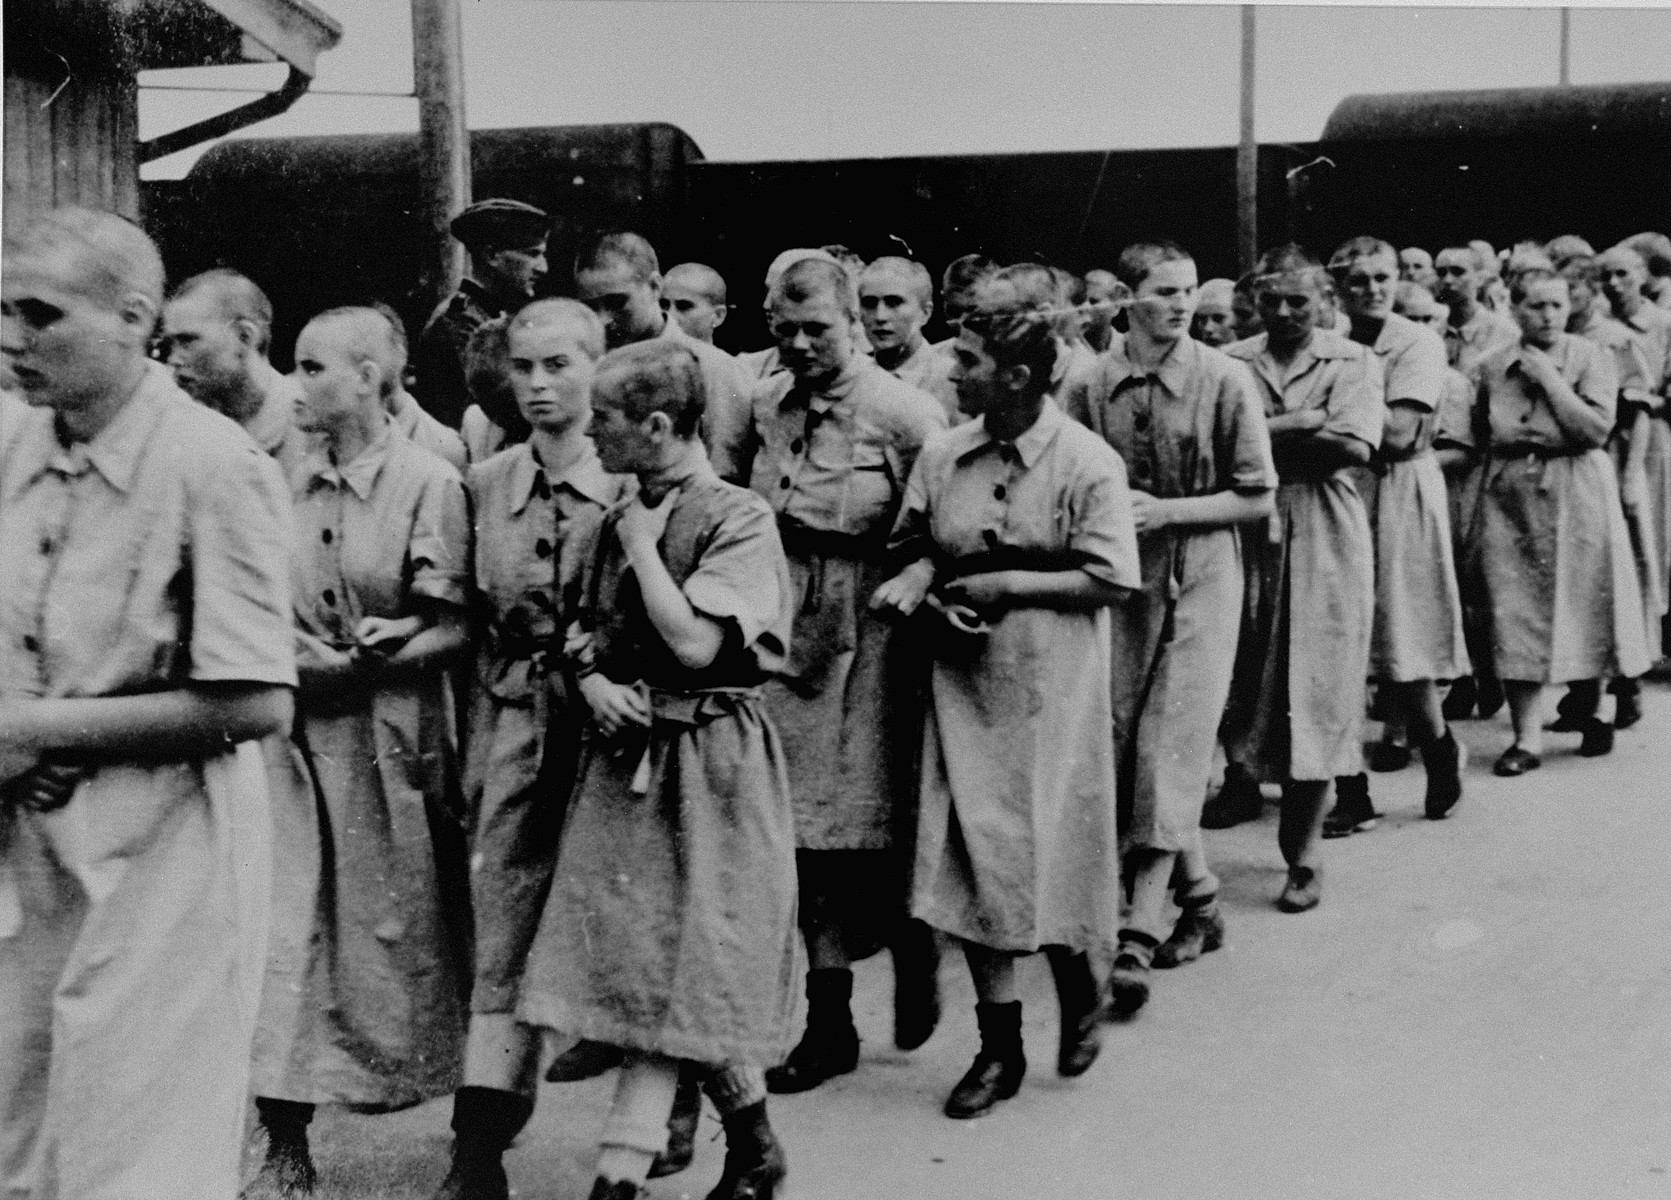 Jewish women from Subcarpathian Rus who have been selected for forced labor at Auschwitz-Birkenau, march toward their barracks after disinfection and headshaving.  Among those pictured are Ella Hart Guttman (in the center with dark hair, in the outside row facing inward) from Uzhgorod and next to her, Lida Hausler Leibovics also of Uzhgorod. The tall woman looking to her left is Eva Fahidi from Szeged.